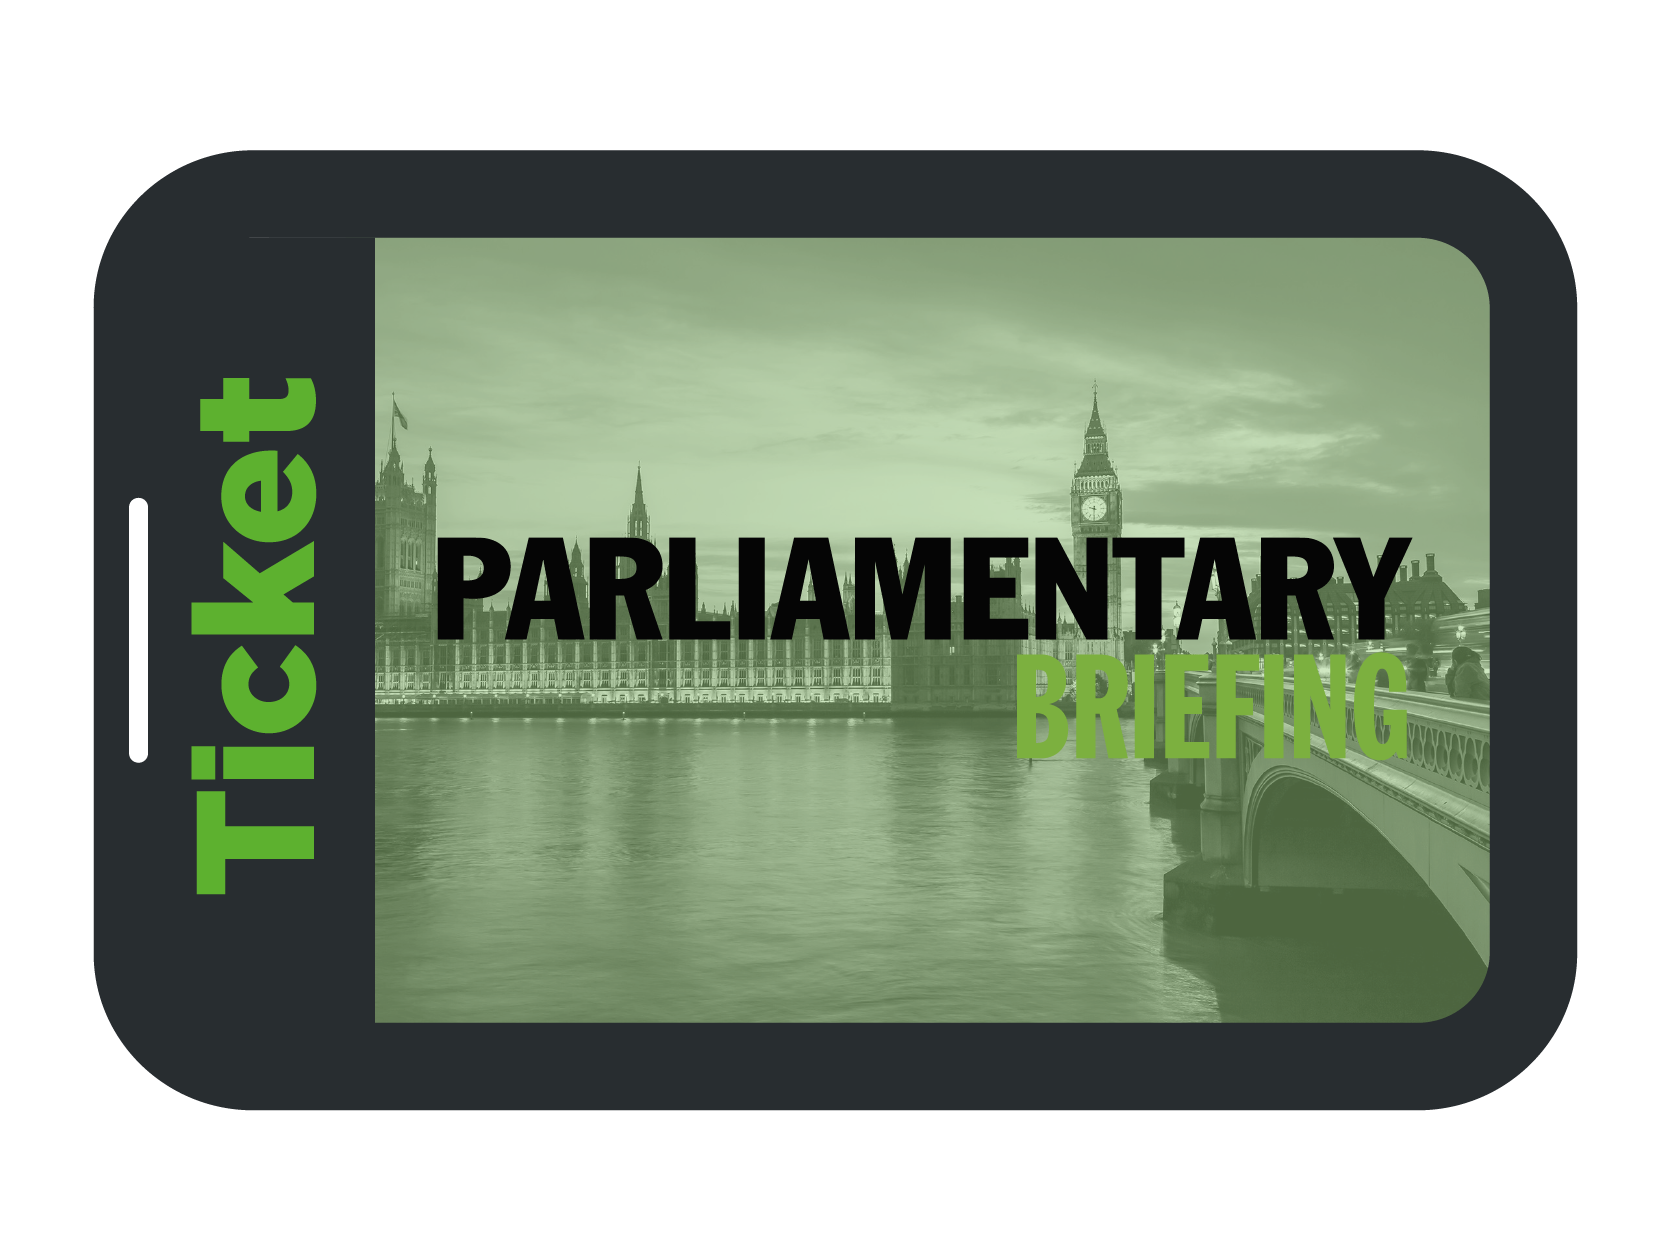 ParliamentaryBriefing-shopnew-01.png